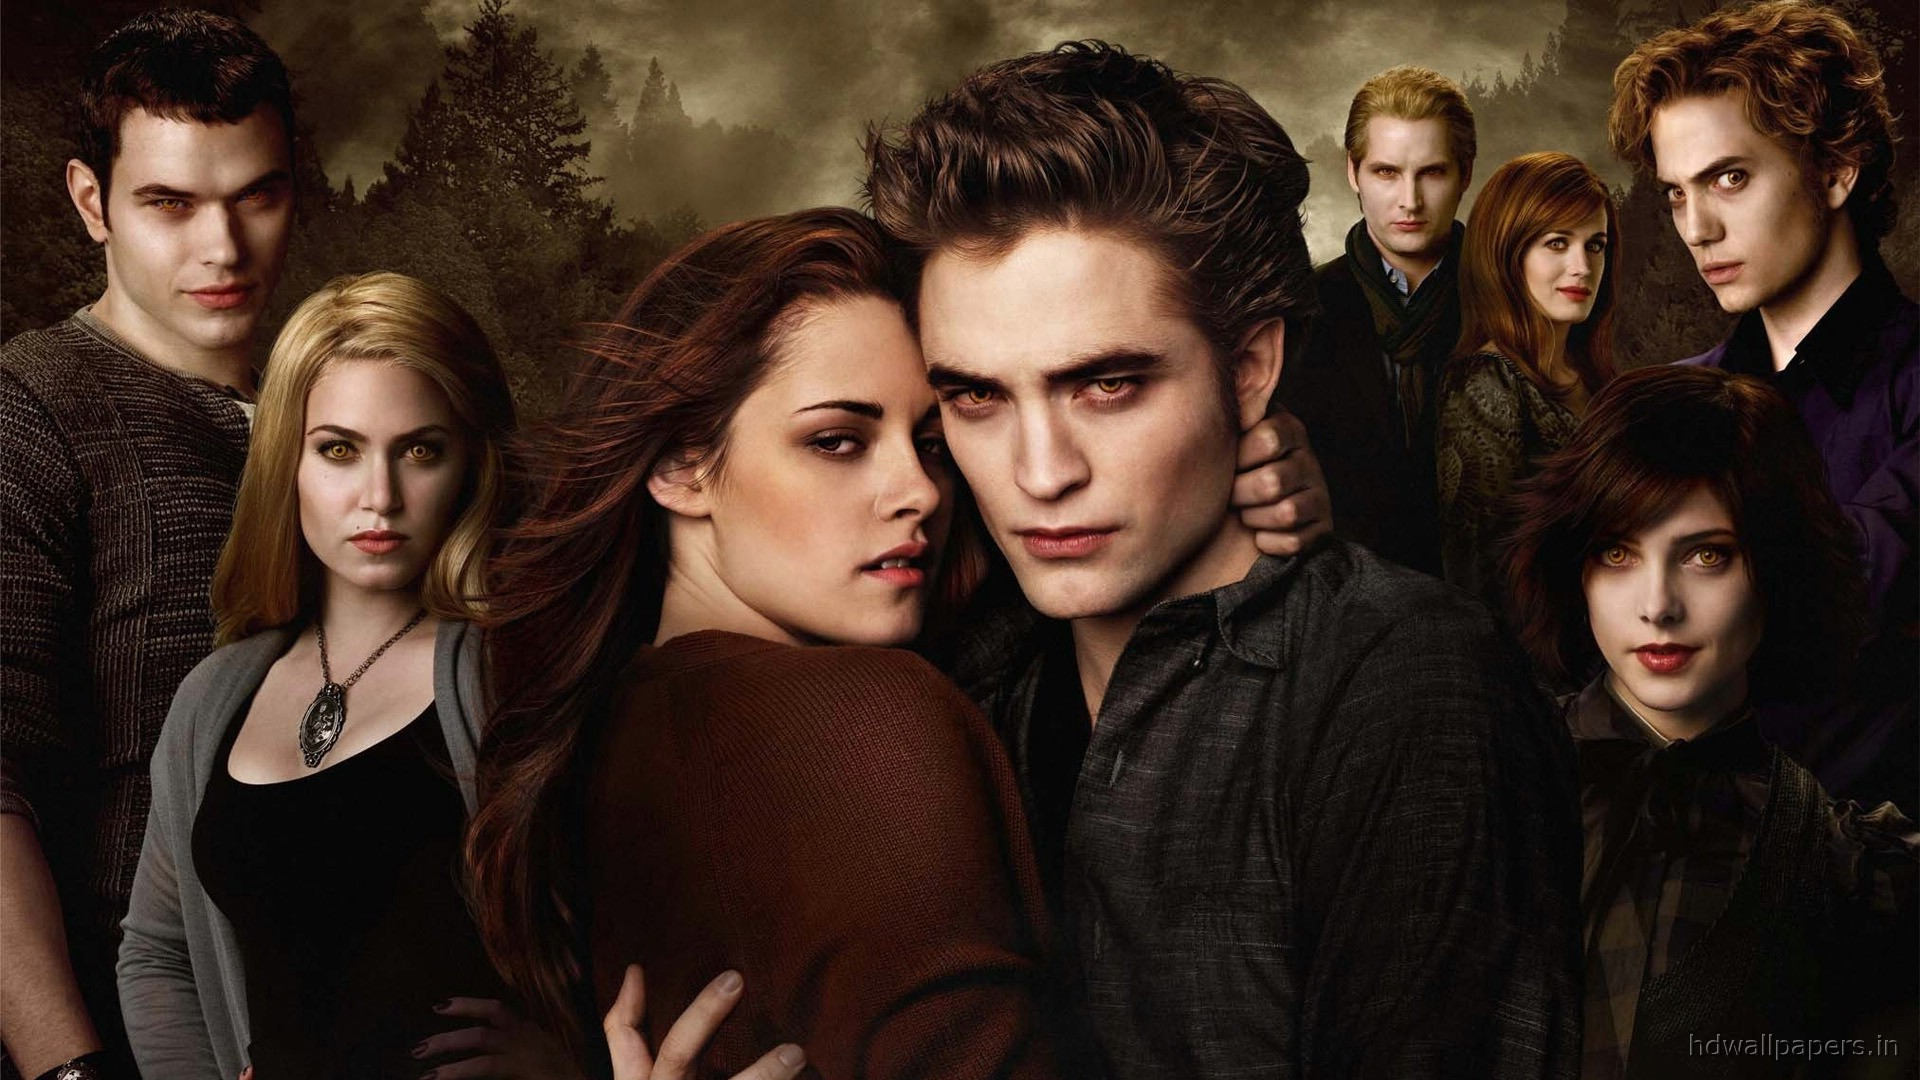 Drunk 'Twilight': The Adventures of A Film Critic, A Bottle